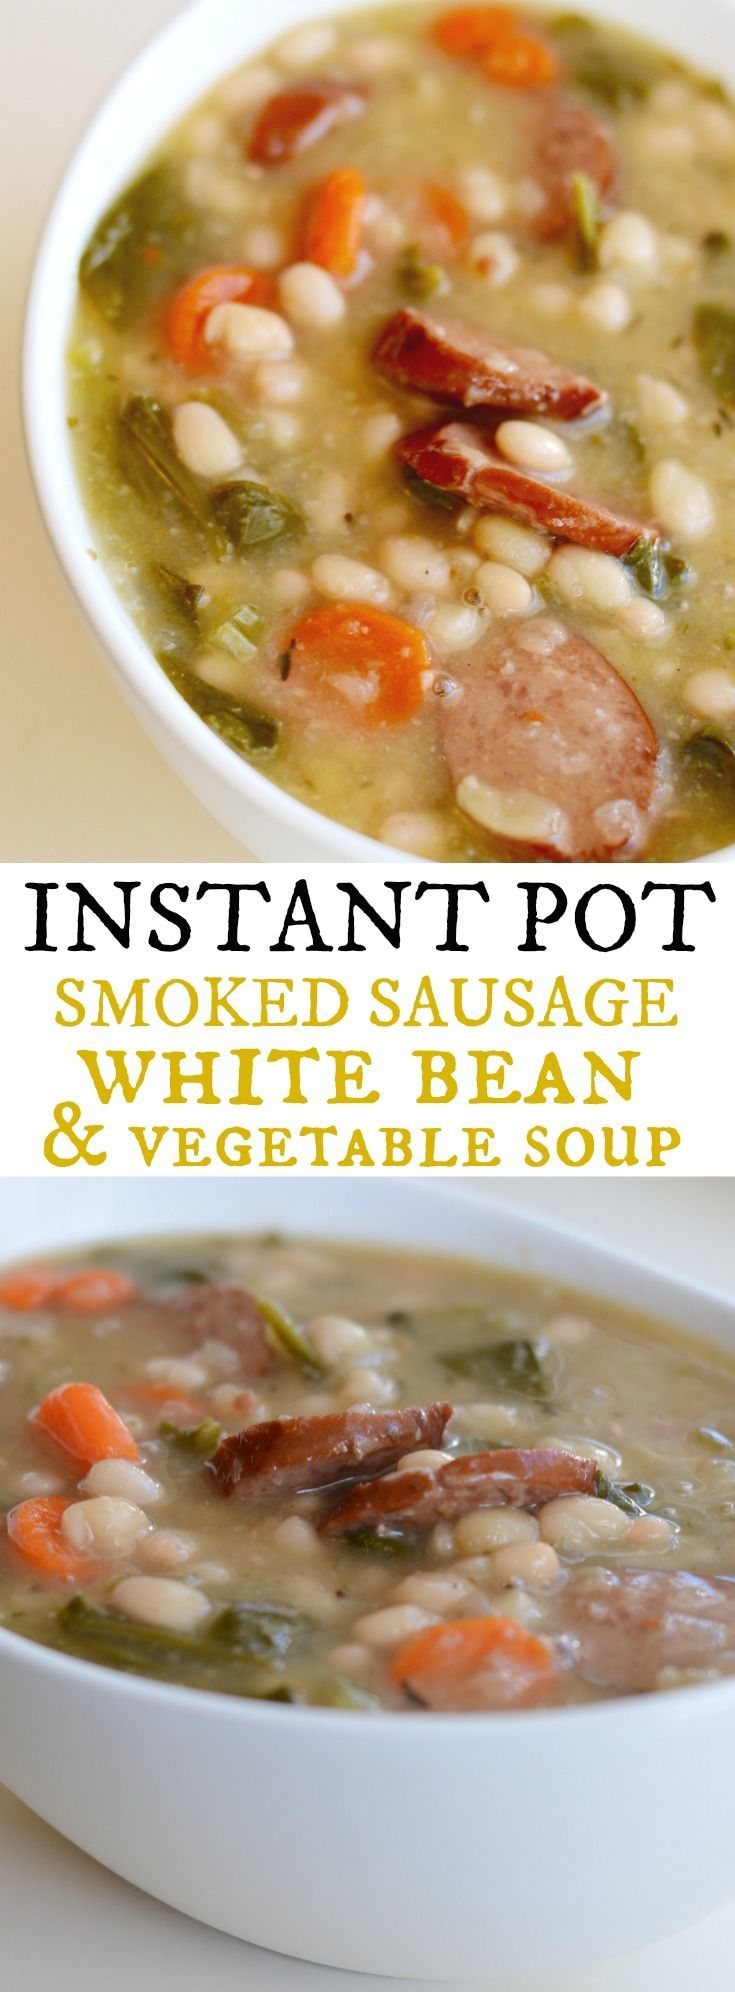 Instant Pot soup recipe | Smoked Sausage, White Bean and Vegetable Soup